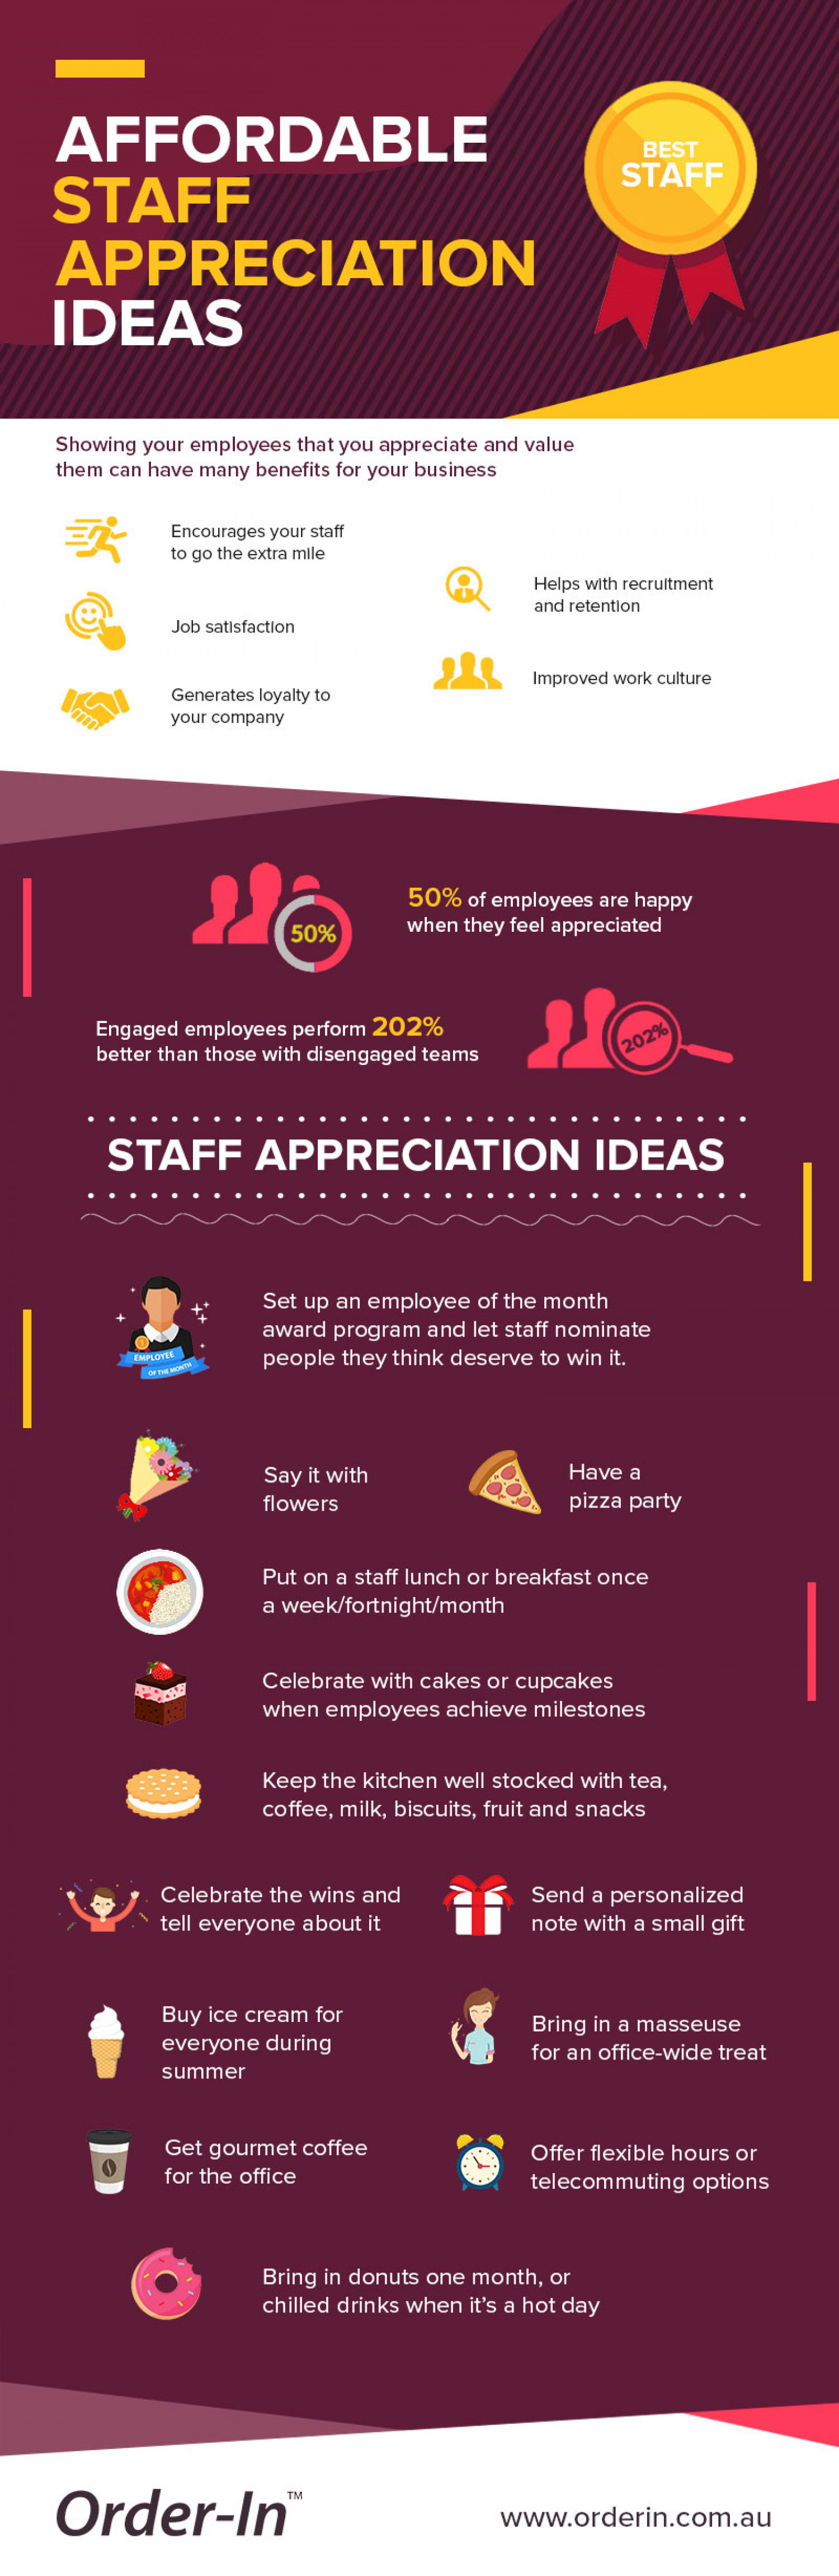 Affordable staff appreciation ideas Infographic